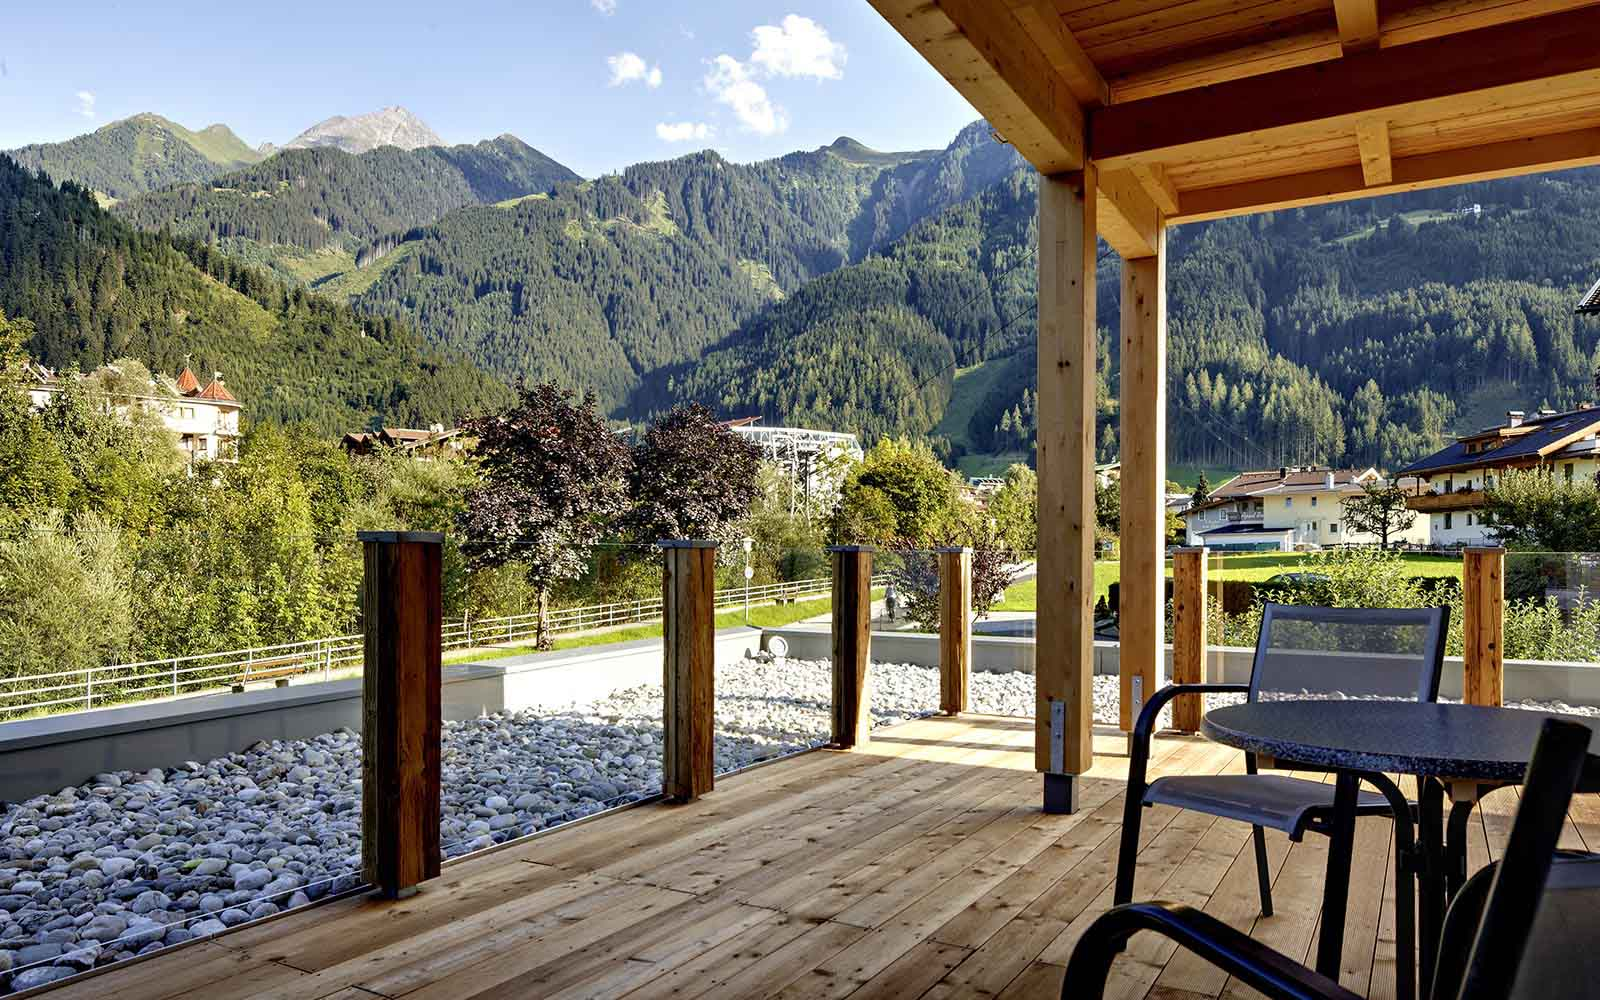 Huber s boutiquehotel mayrhofen tyrol austria niche for Boutique hotel tyrol